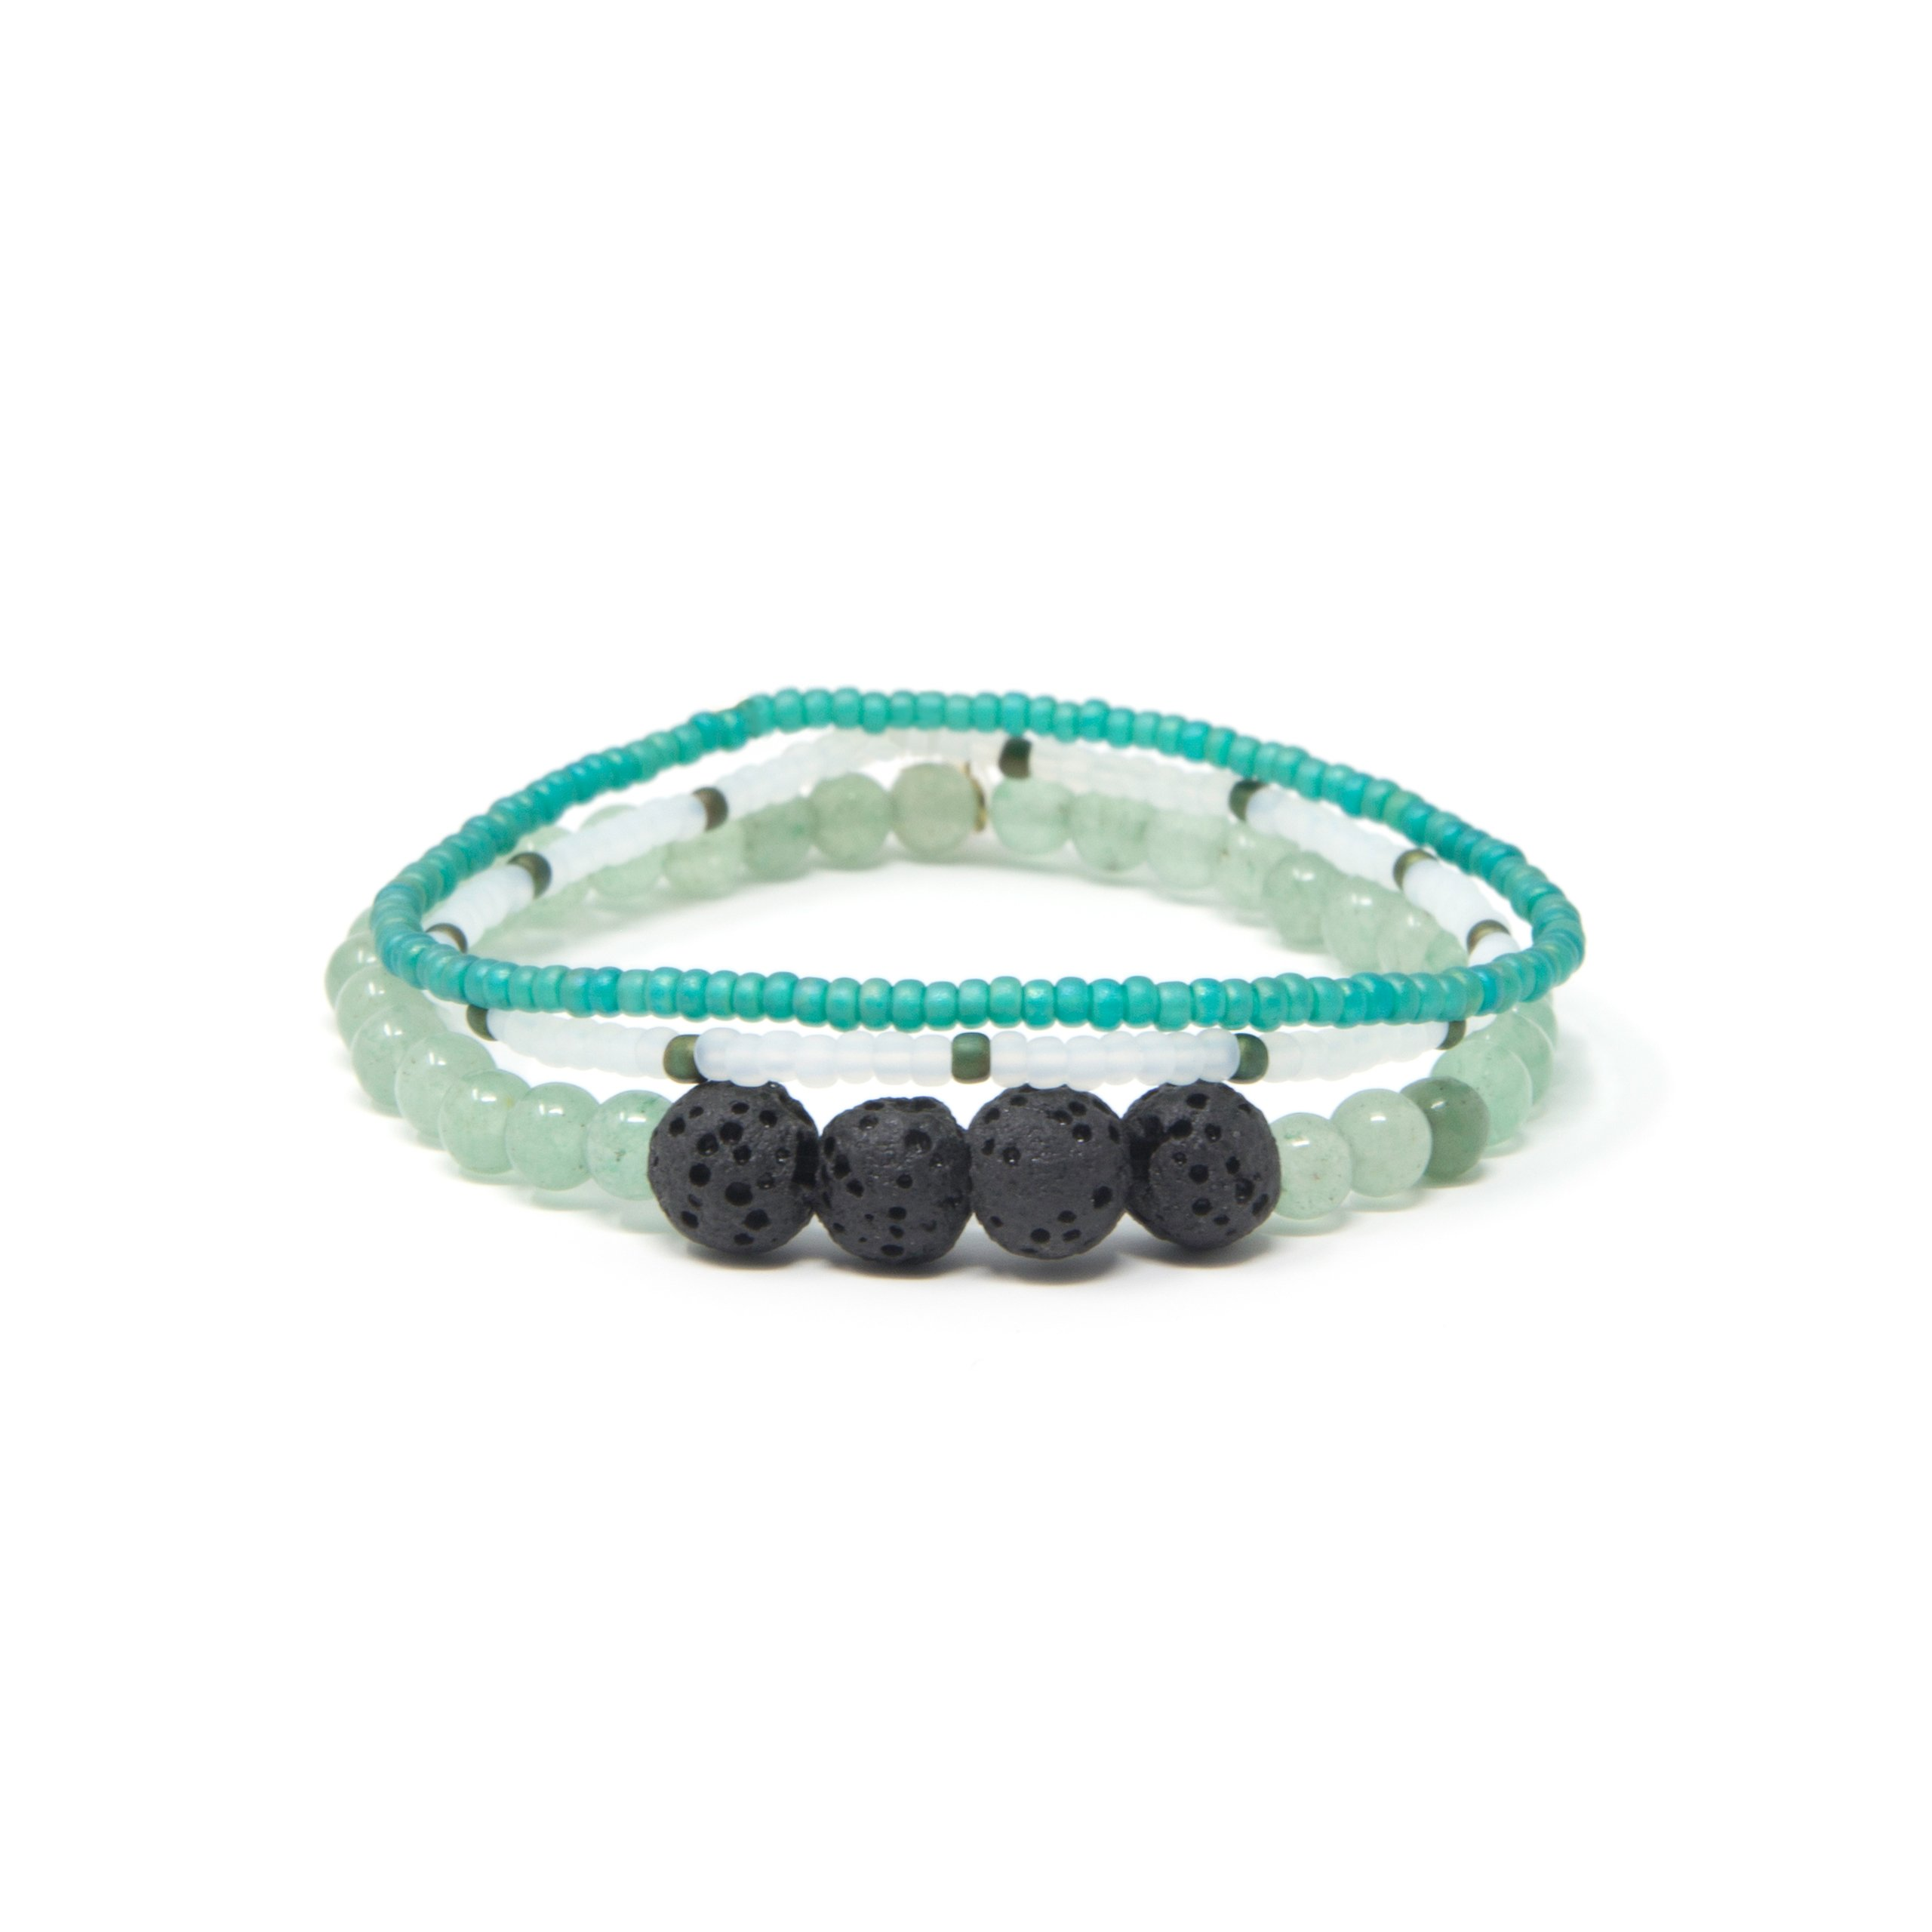 Essential Oil Diffuser Bracelet for Women and Men by Helloha – Lava Rock and Gemstone Beaded Aromatherapy Bracelet